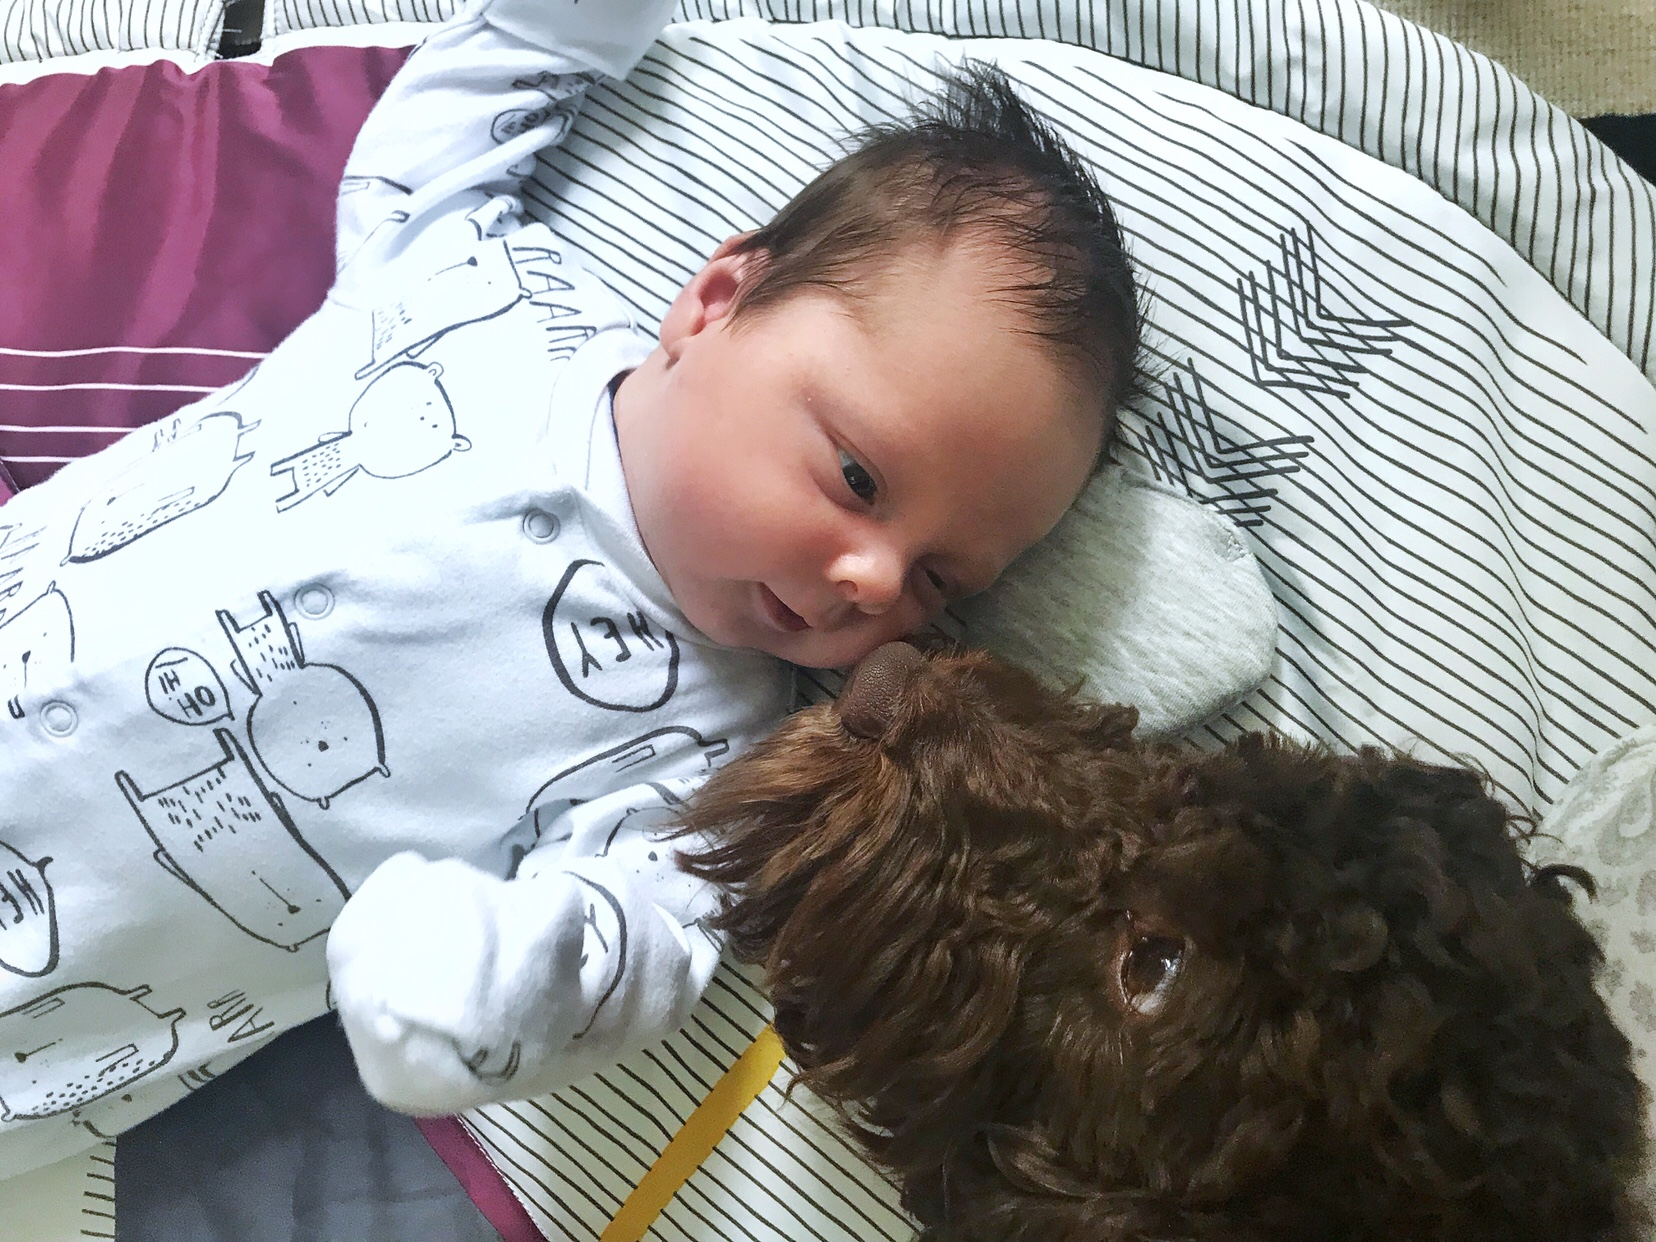 Introducing a baby to a dog